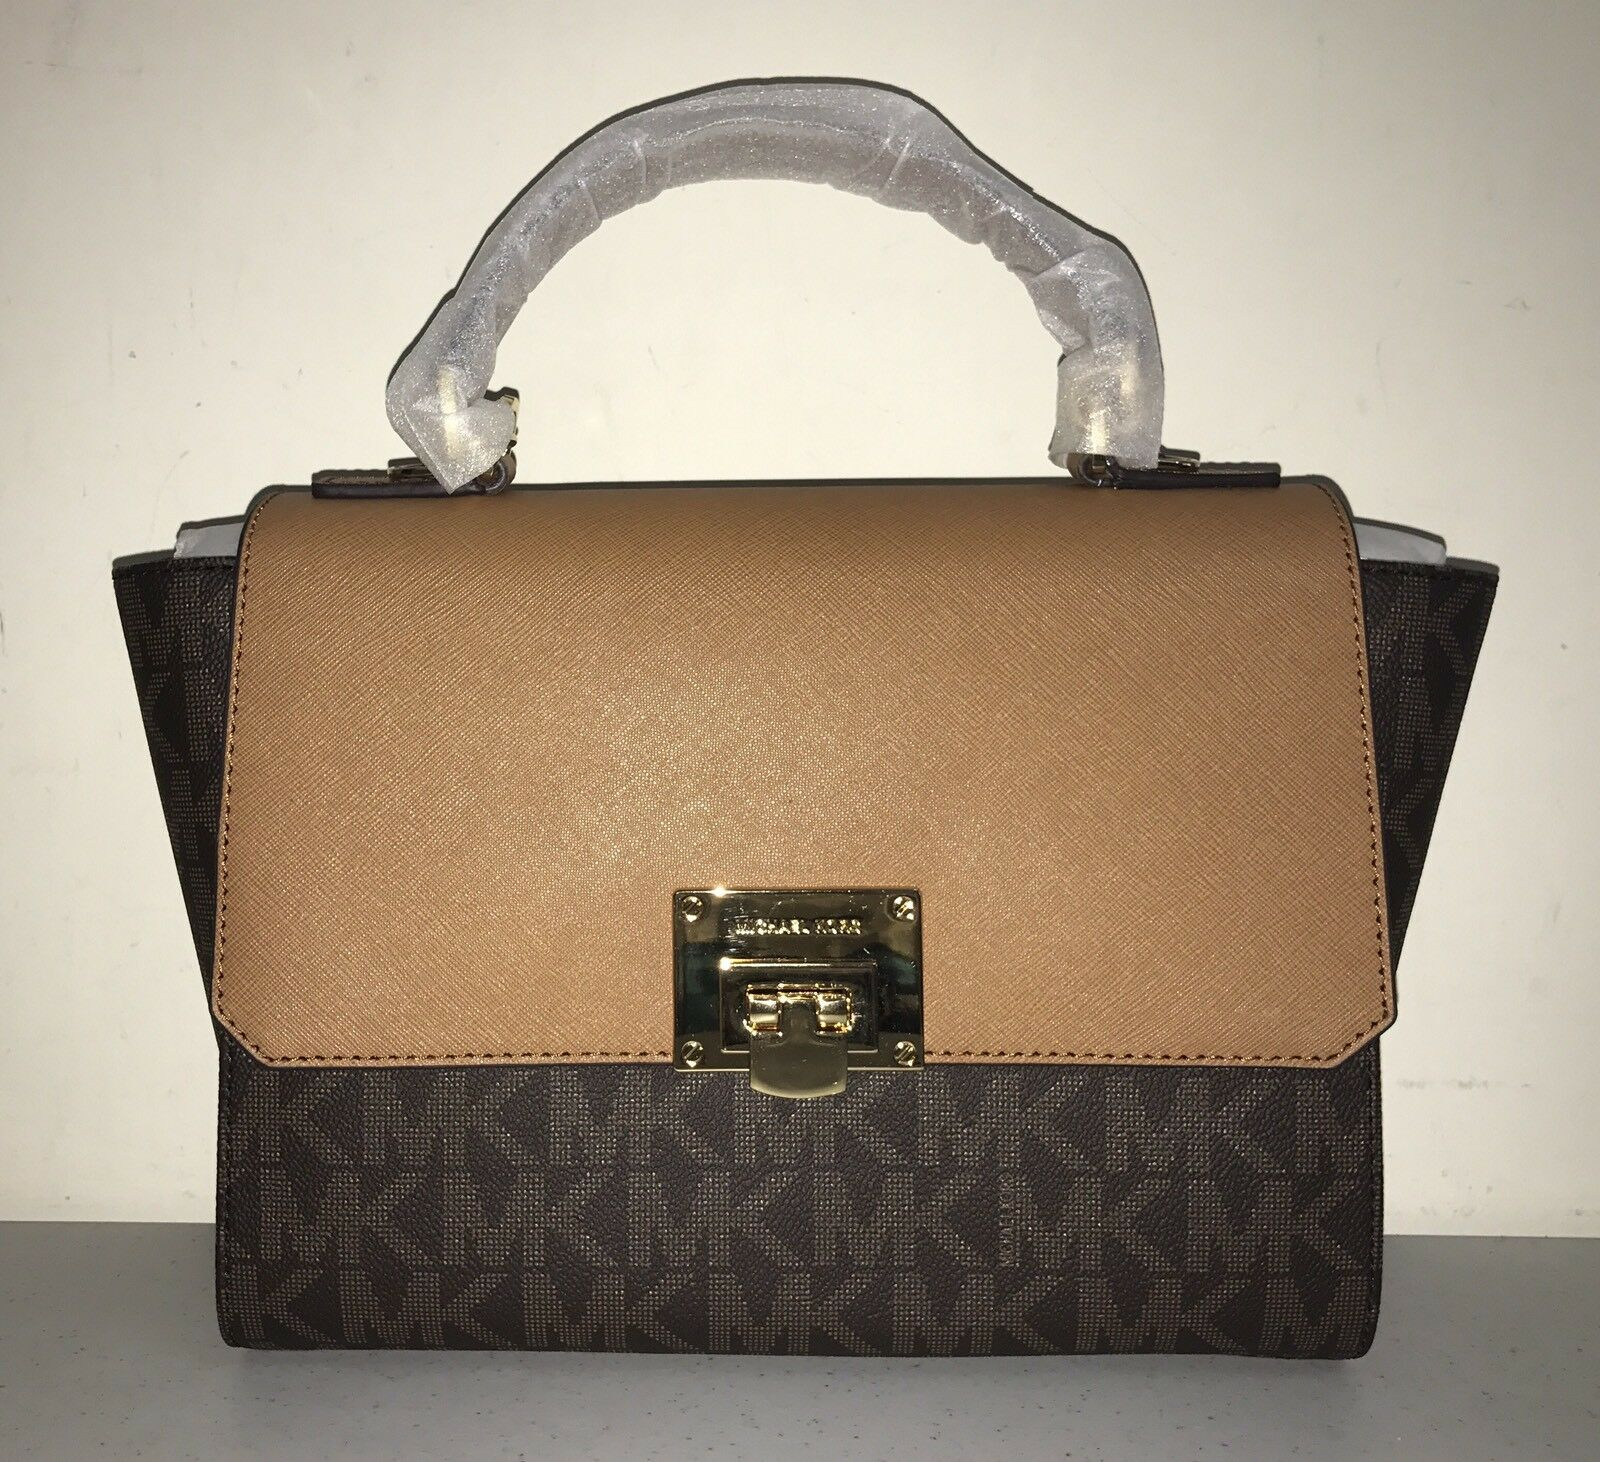 Michael kors bags ebay philippines - Picture 1 Of 8